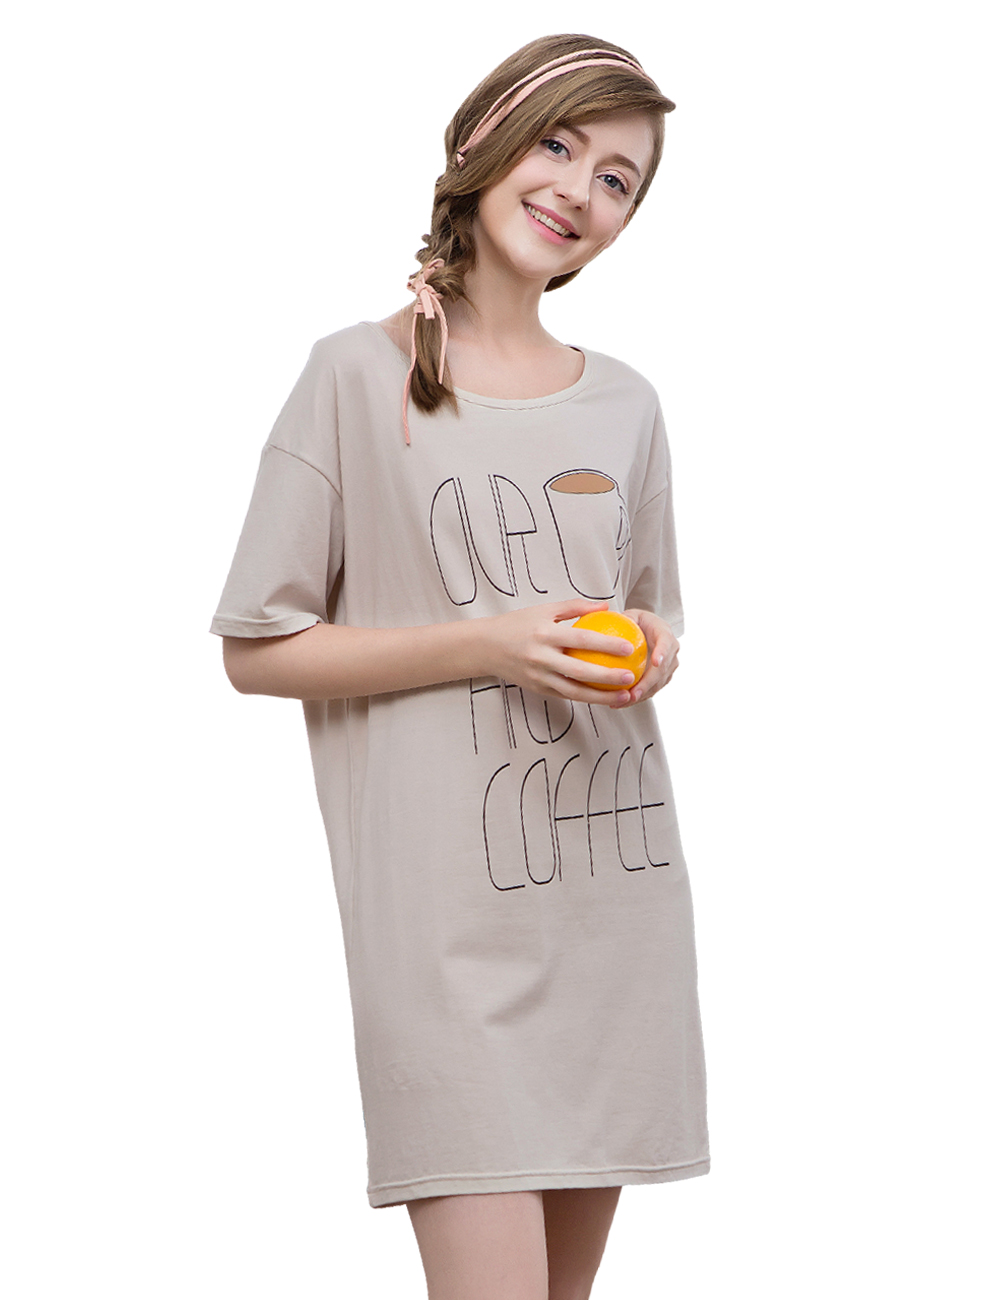 Women Nightgowns Summer Sleepwear Casual Night Dresses Plus Short Sleeve Letter Print Loose Nightdress Home Clothes 1763A